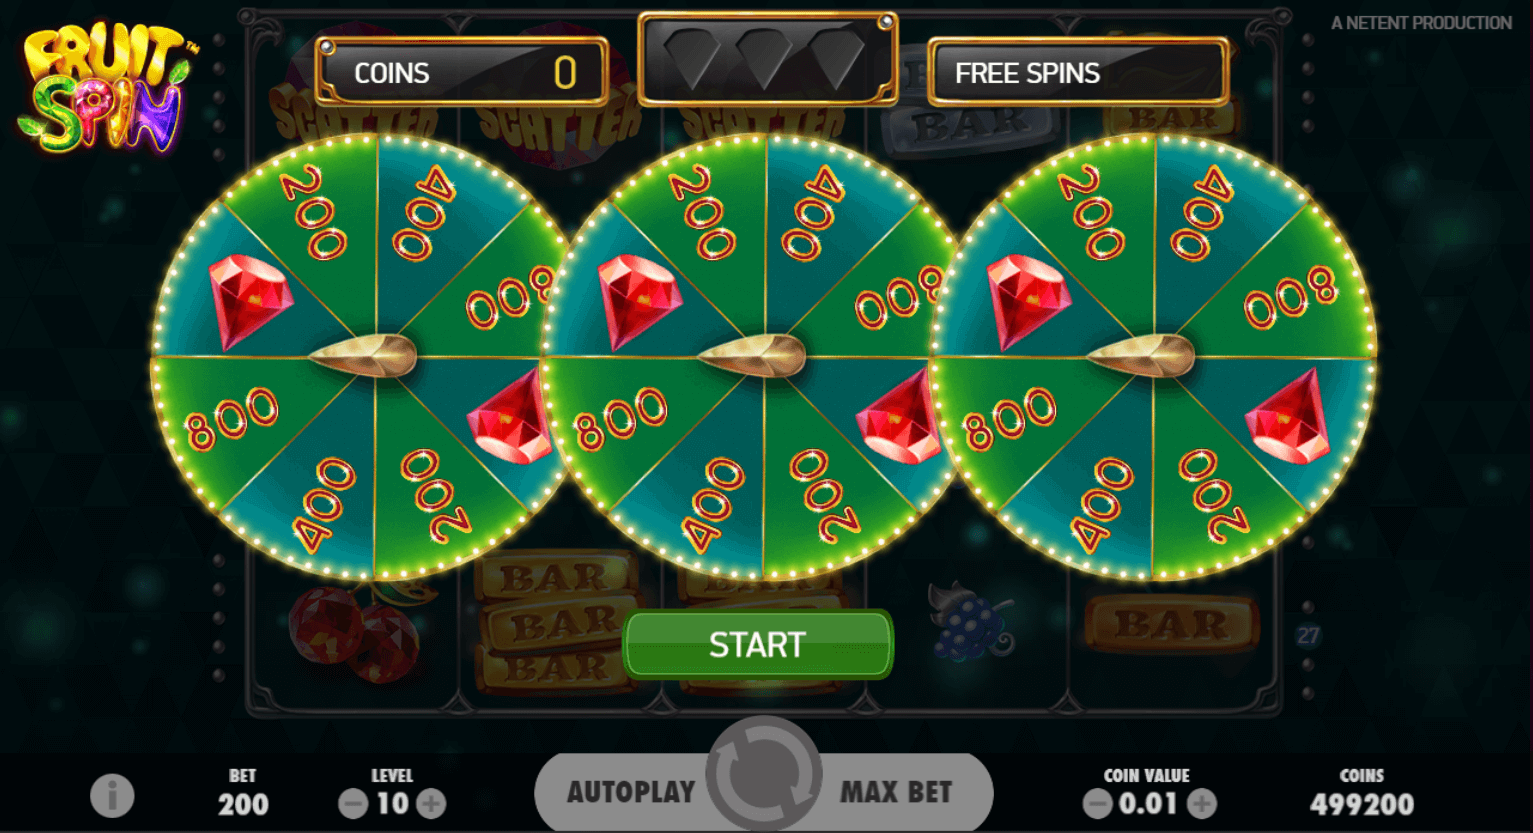 netent - fruit spin - bonus wheel- casinogroundsdotcom